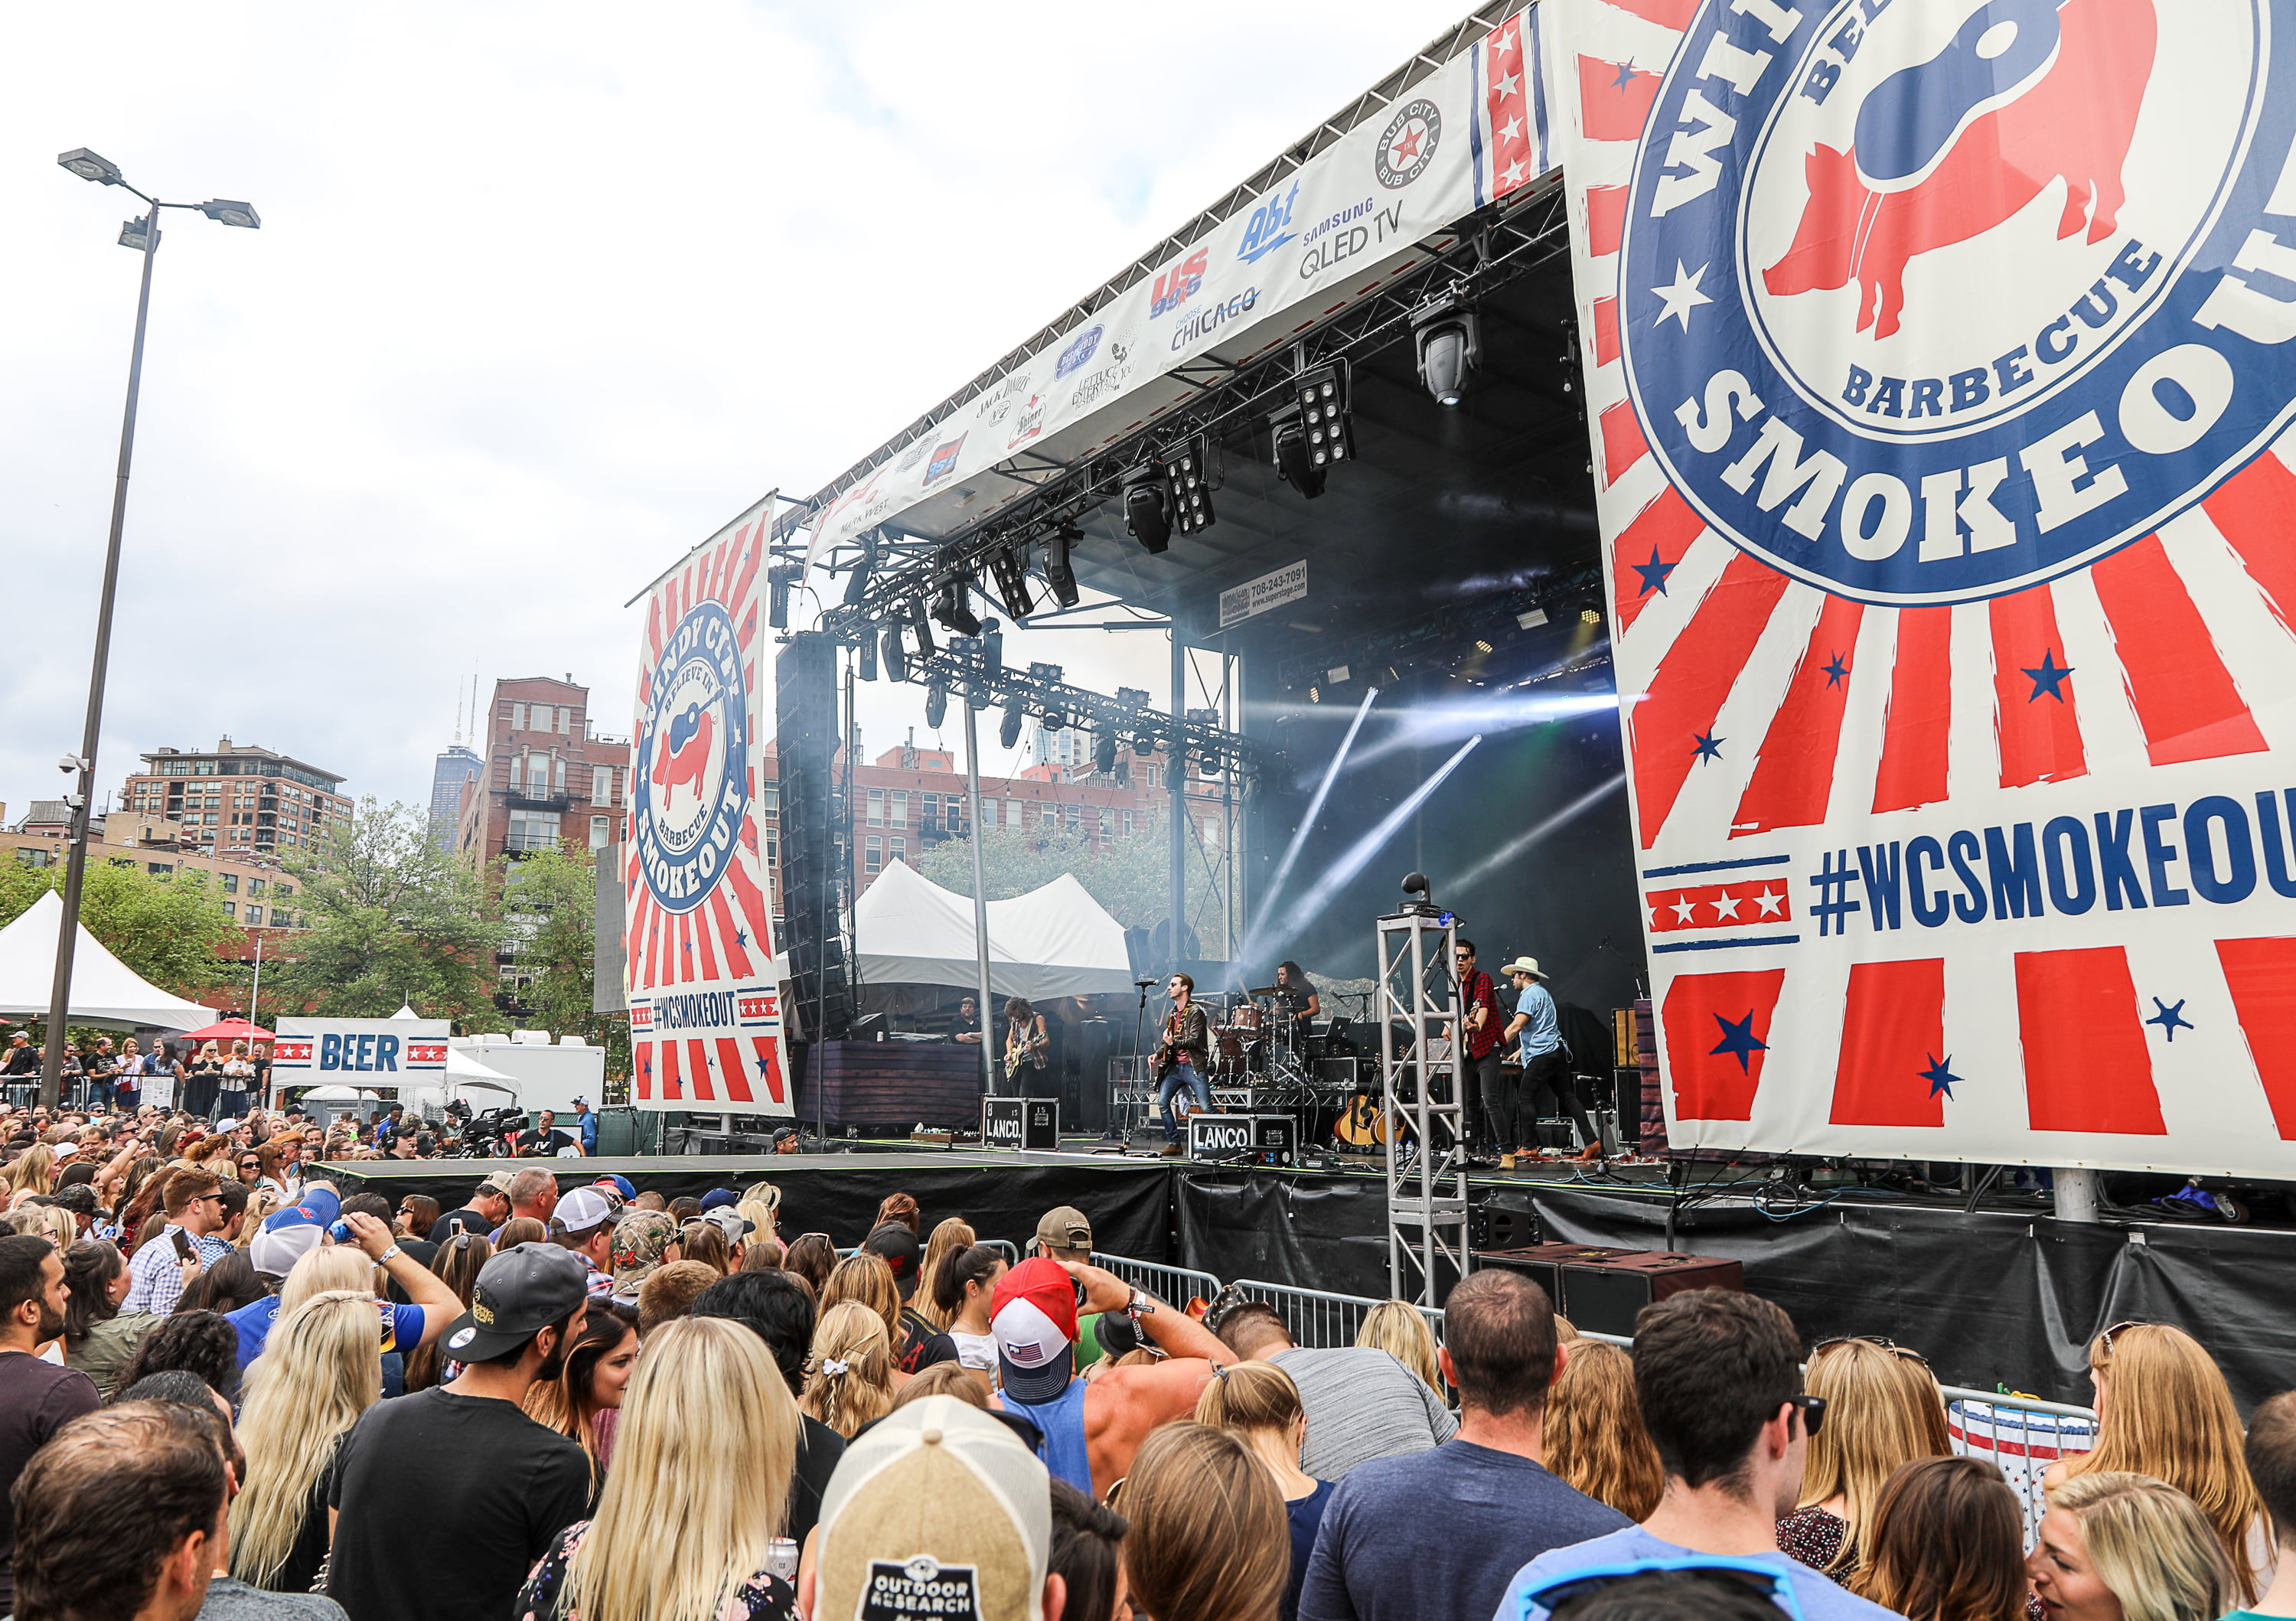 Chicago's Windy City Smokeout